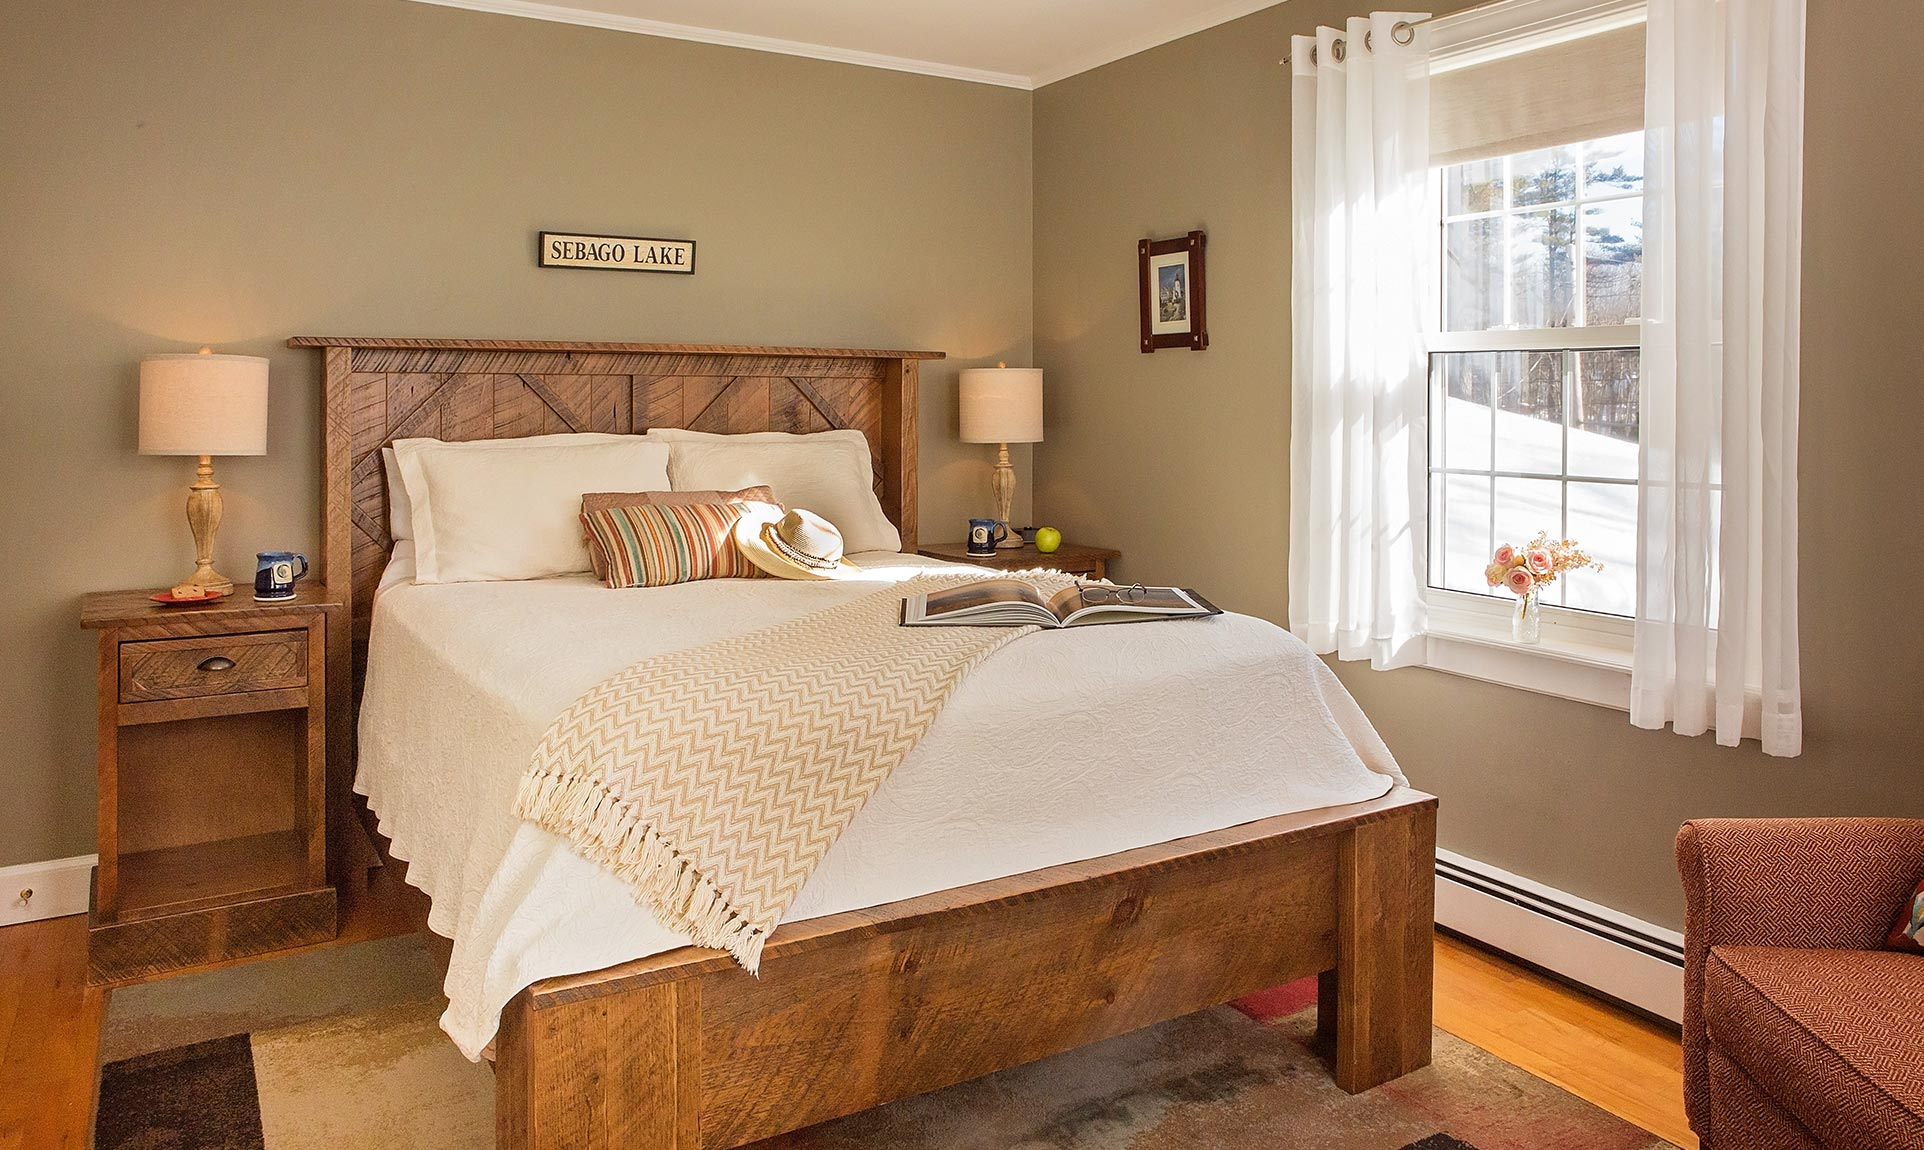 Relaxing white bed with wooden backboard under Sebago Lake sign